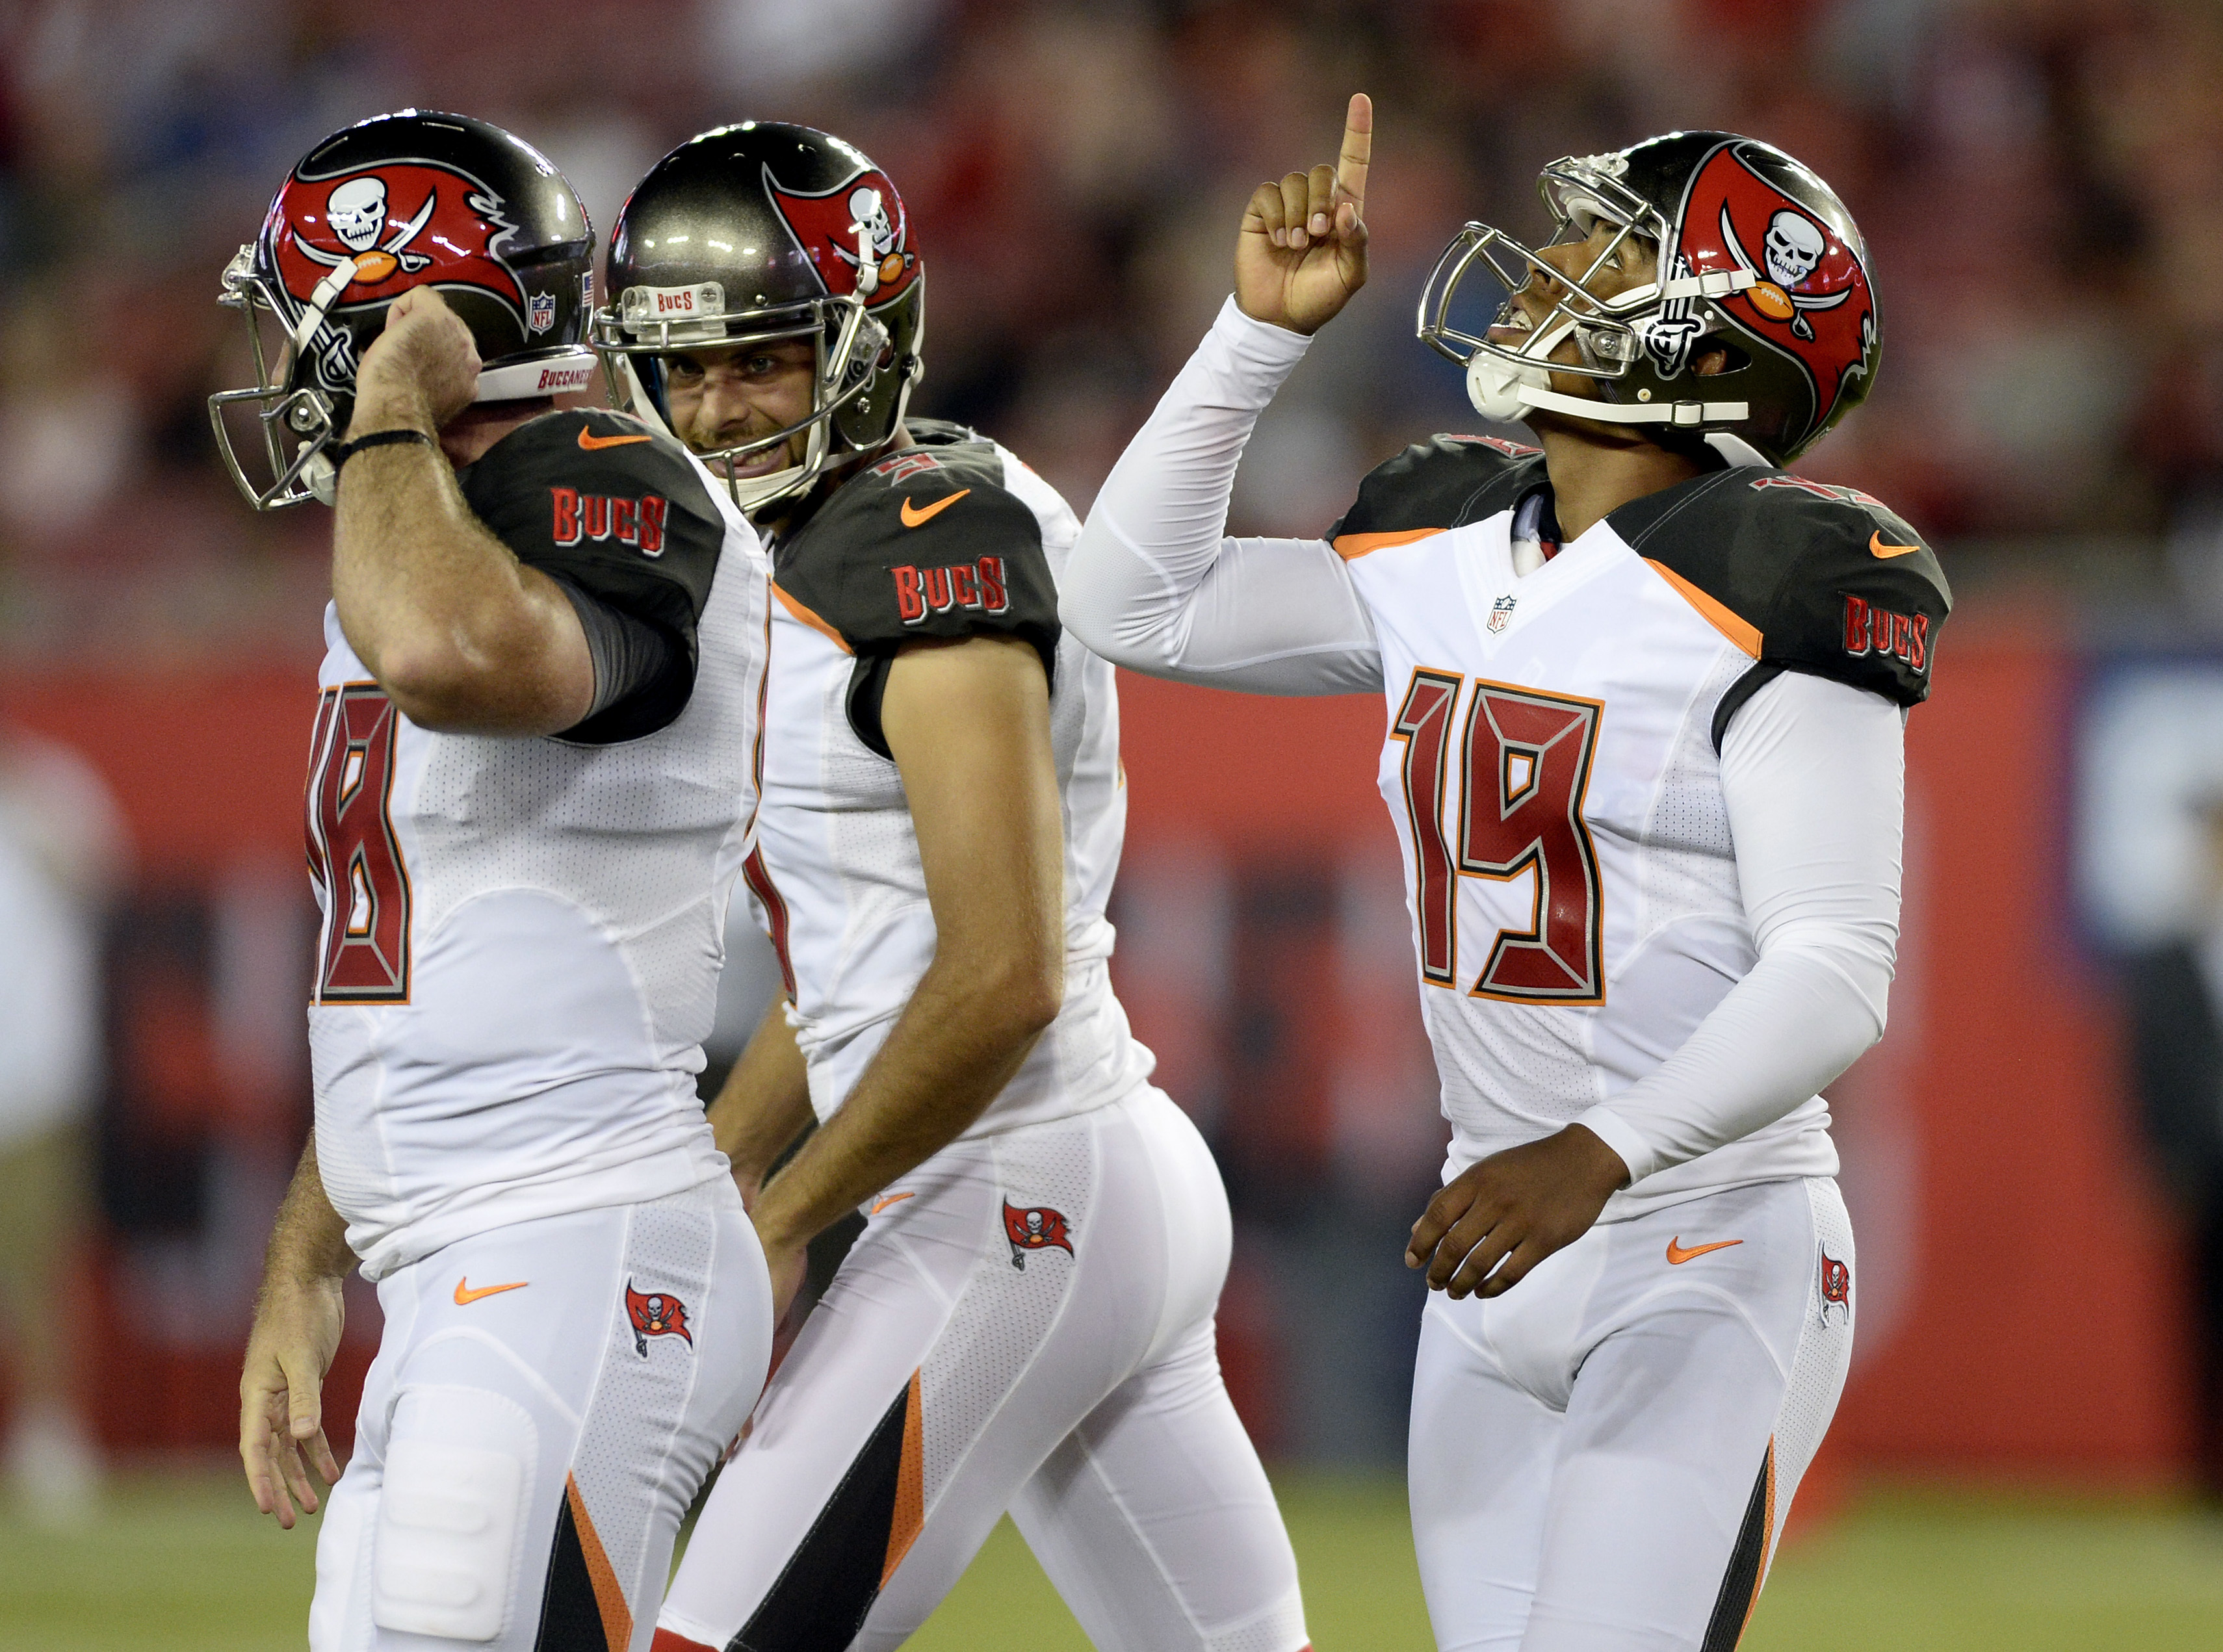 Tampa Bay Buccaneers kicker Roberto Aguayo (19) reacts after kicking a field goal against the Cleveland Browns during the first quarter of an NFL football game Friday, Aug. 26, 2016, in Tampa, Fla. (AP Photo/Jason Behnken)